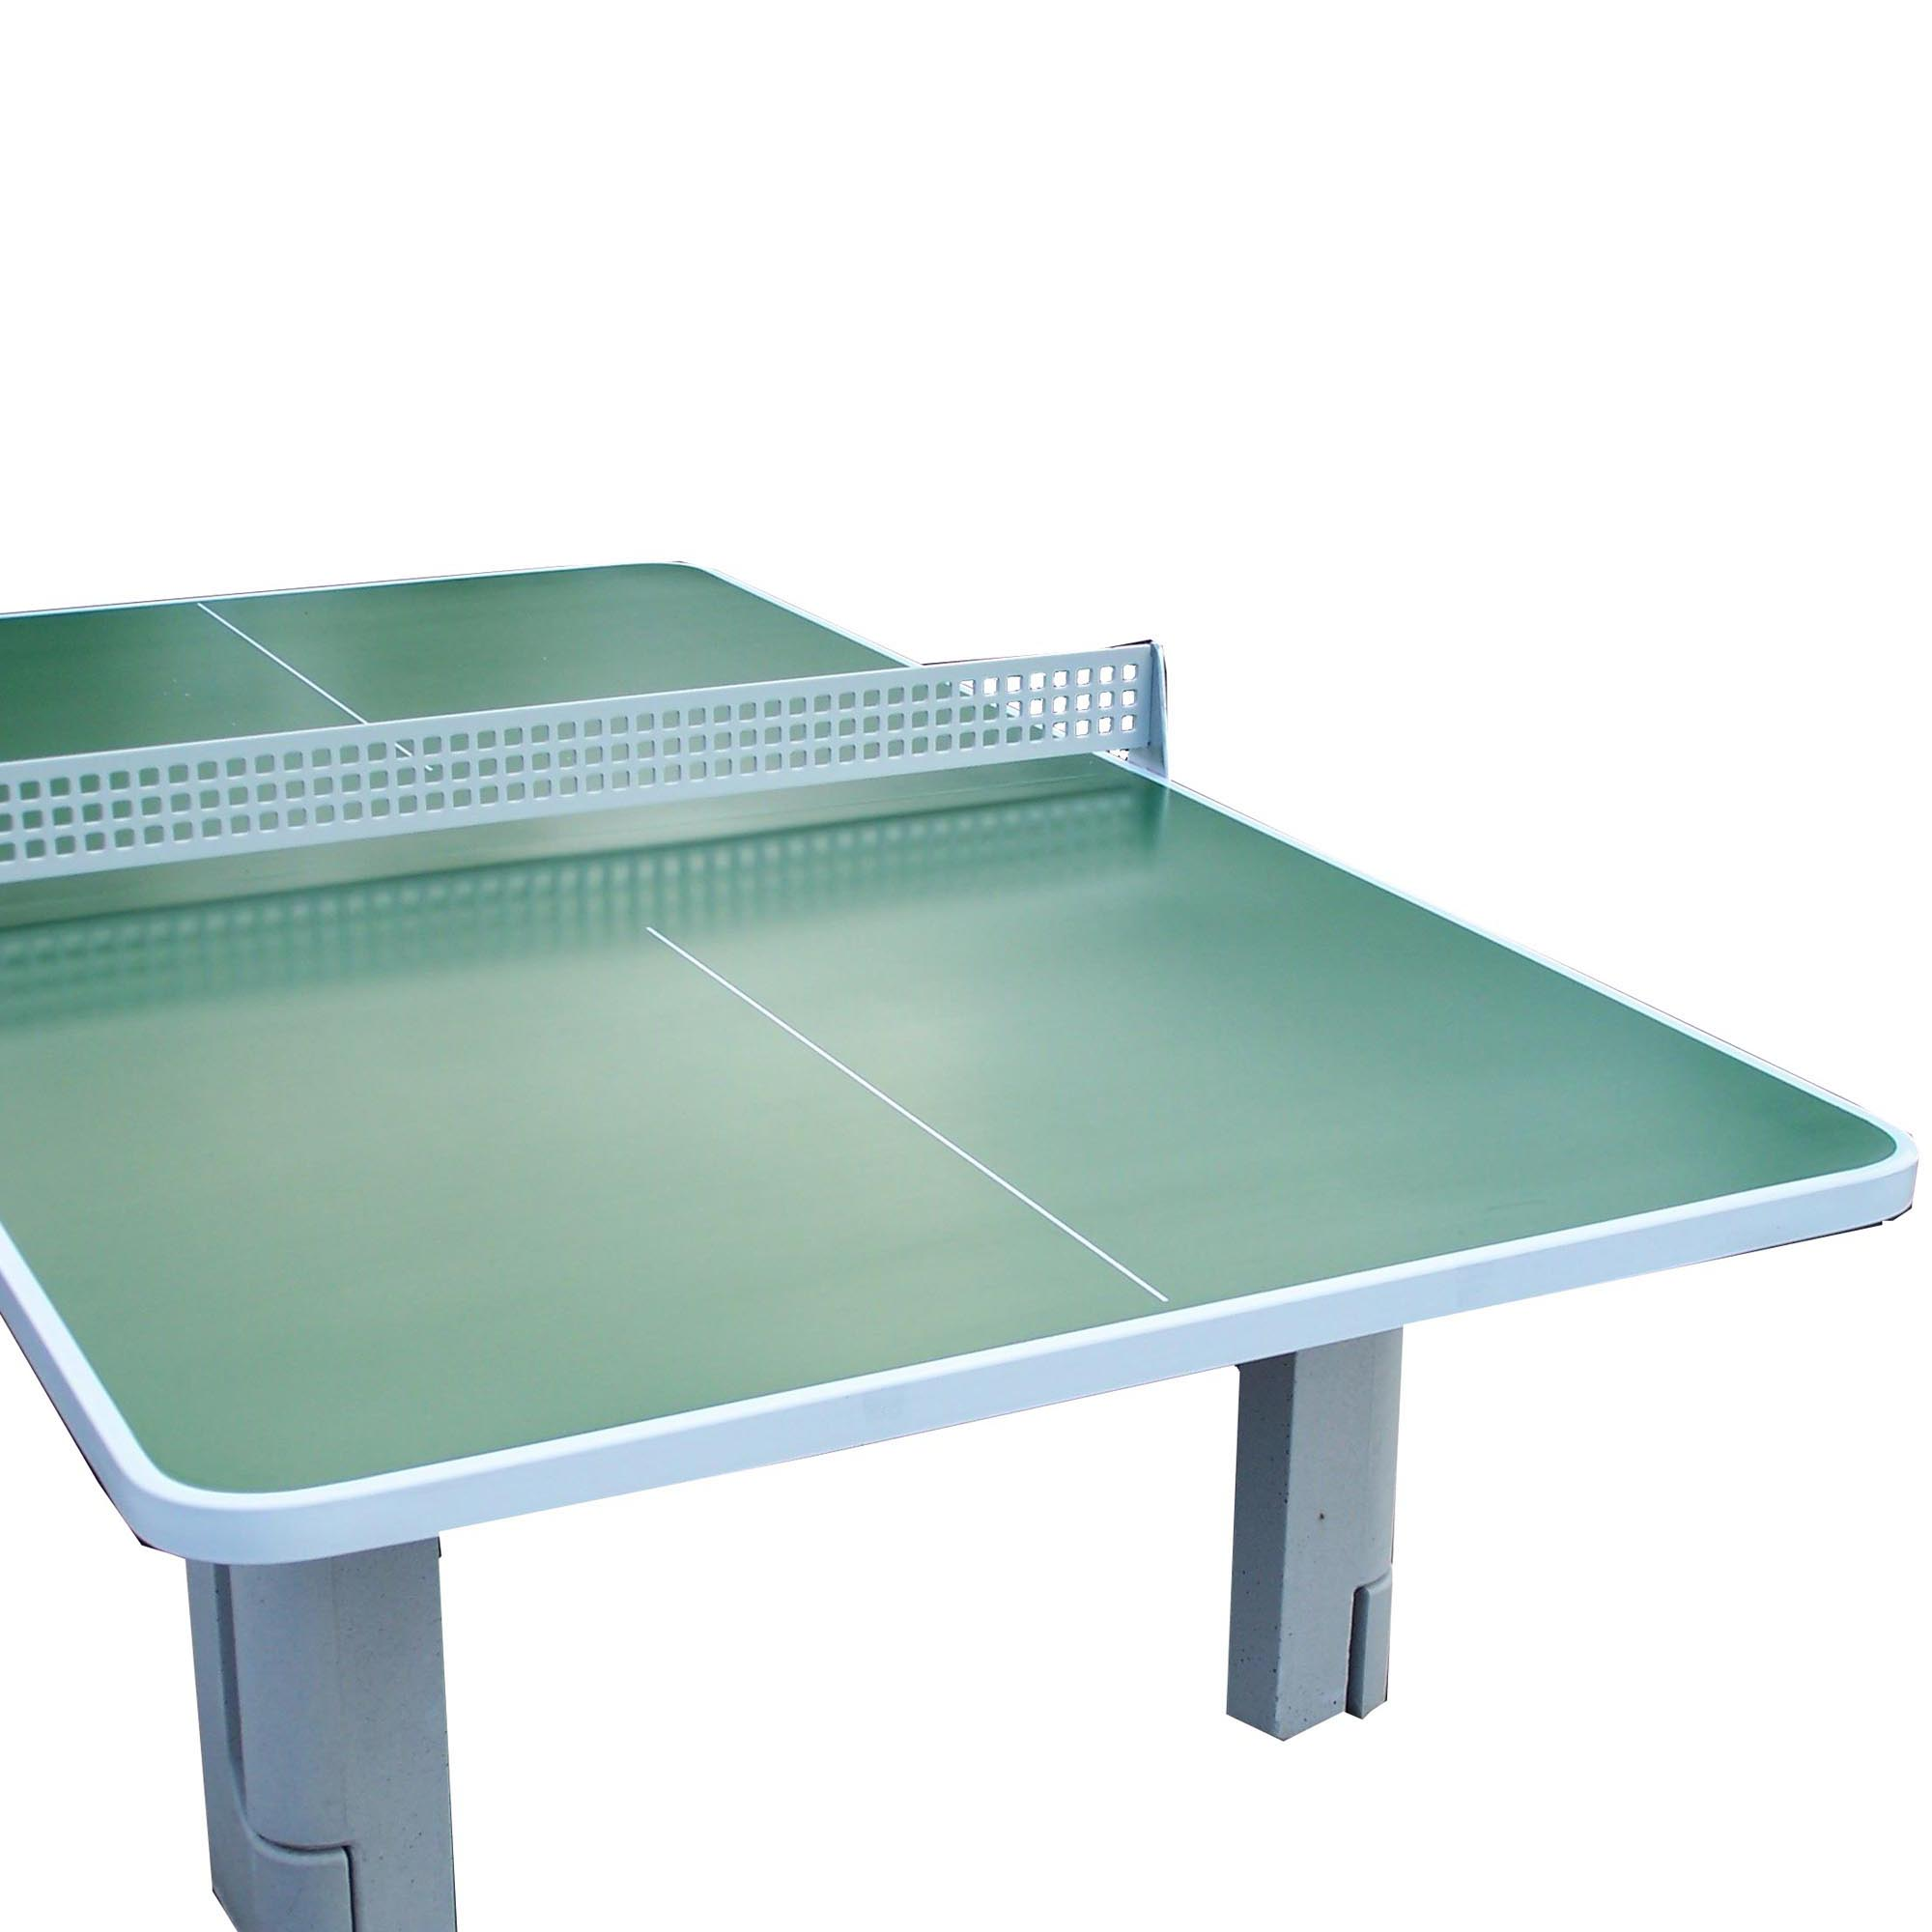 Image of Butterfly B2000 Concrete Table Tennis Table - Blue